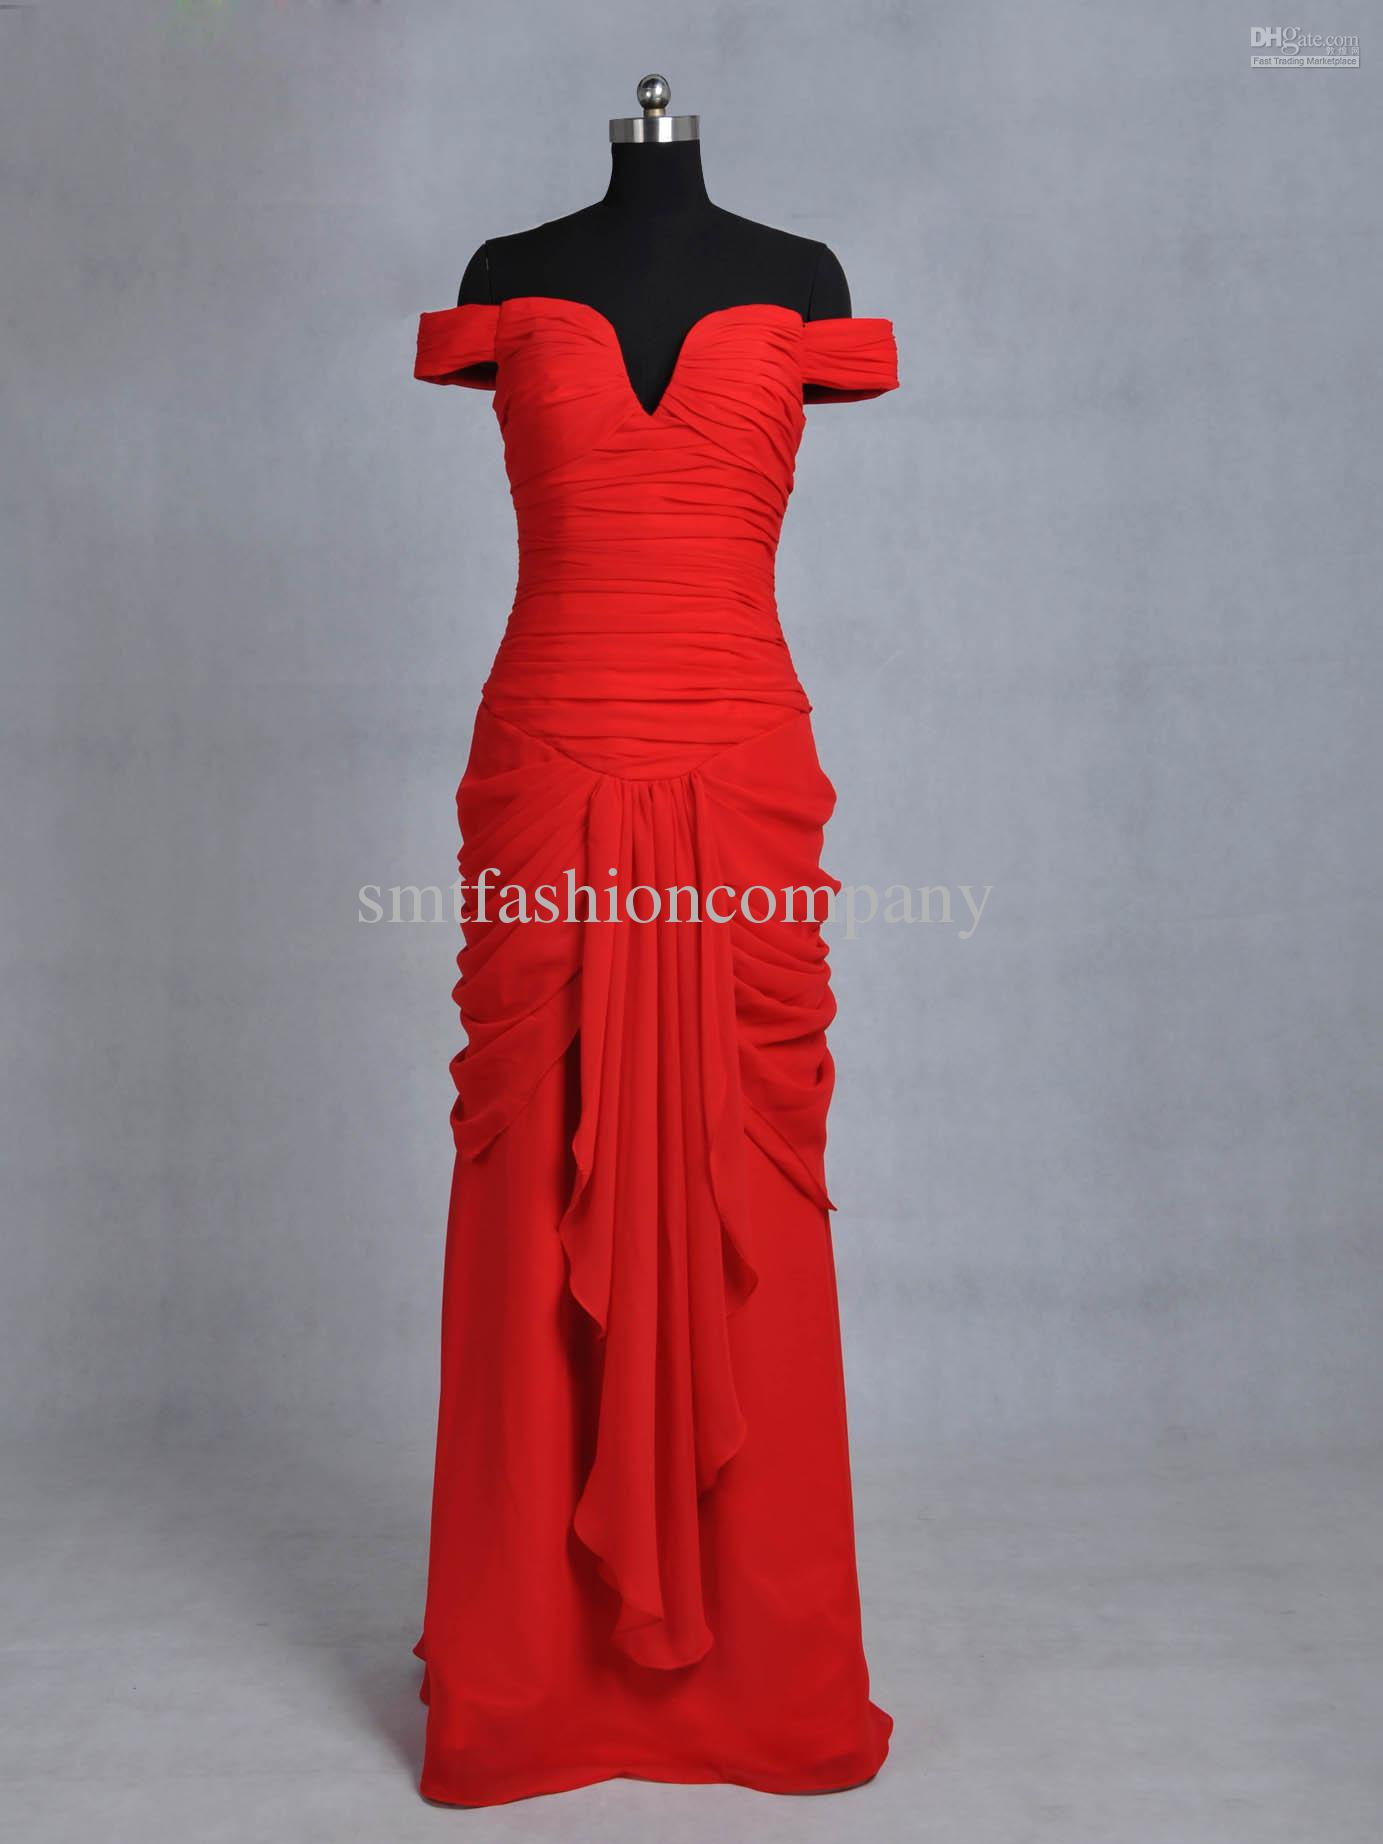 Gift ELE8245 Pretty Woman Red A Line ARuched Off The Shoulder Floor Length  Chiffon Evening Dress Dresses Evening Dresses Long Evening Dresses For Sale  From Smtfashioncompany, $141.3| DHgate.Com